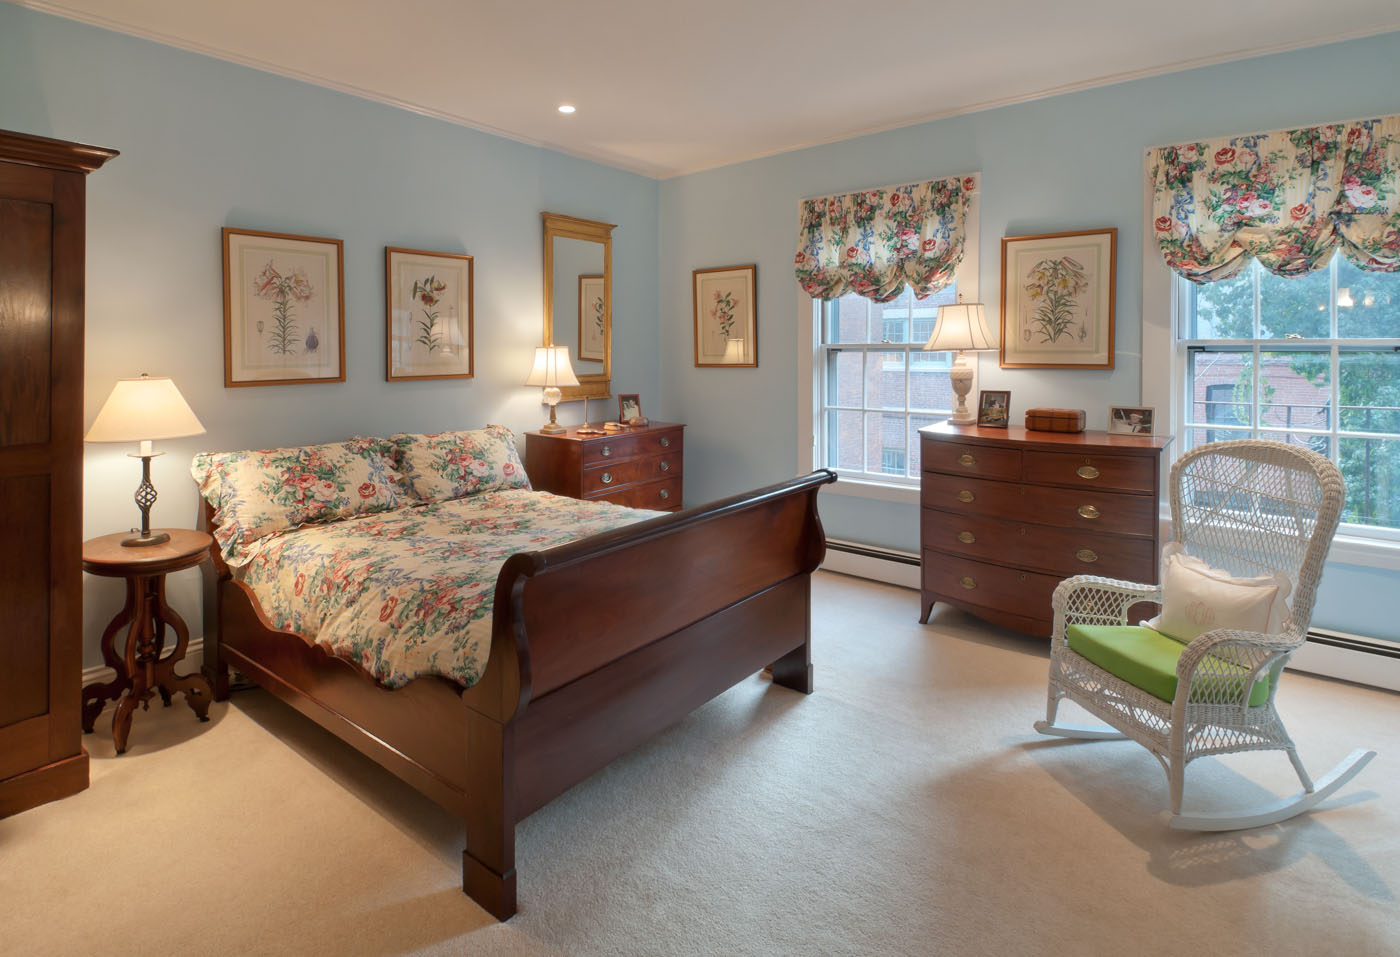 Interior of bedroom | Beacon Hill | Boston MA